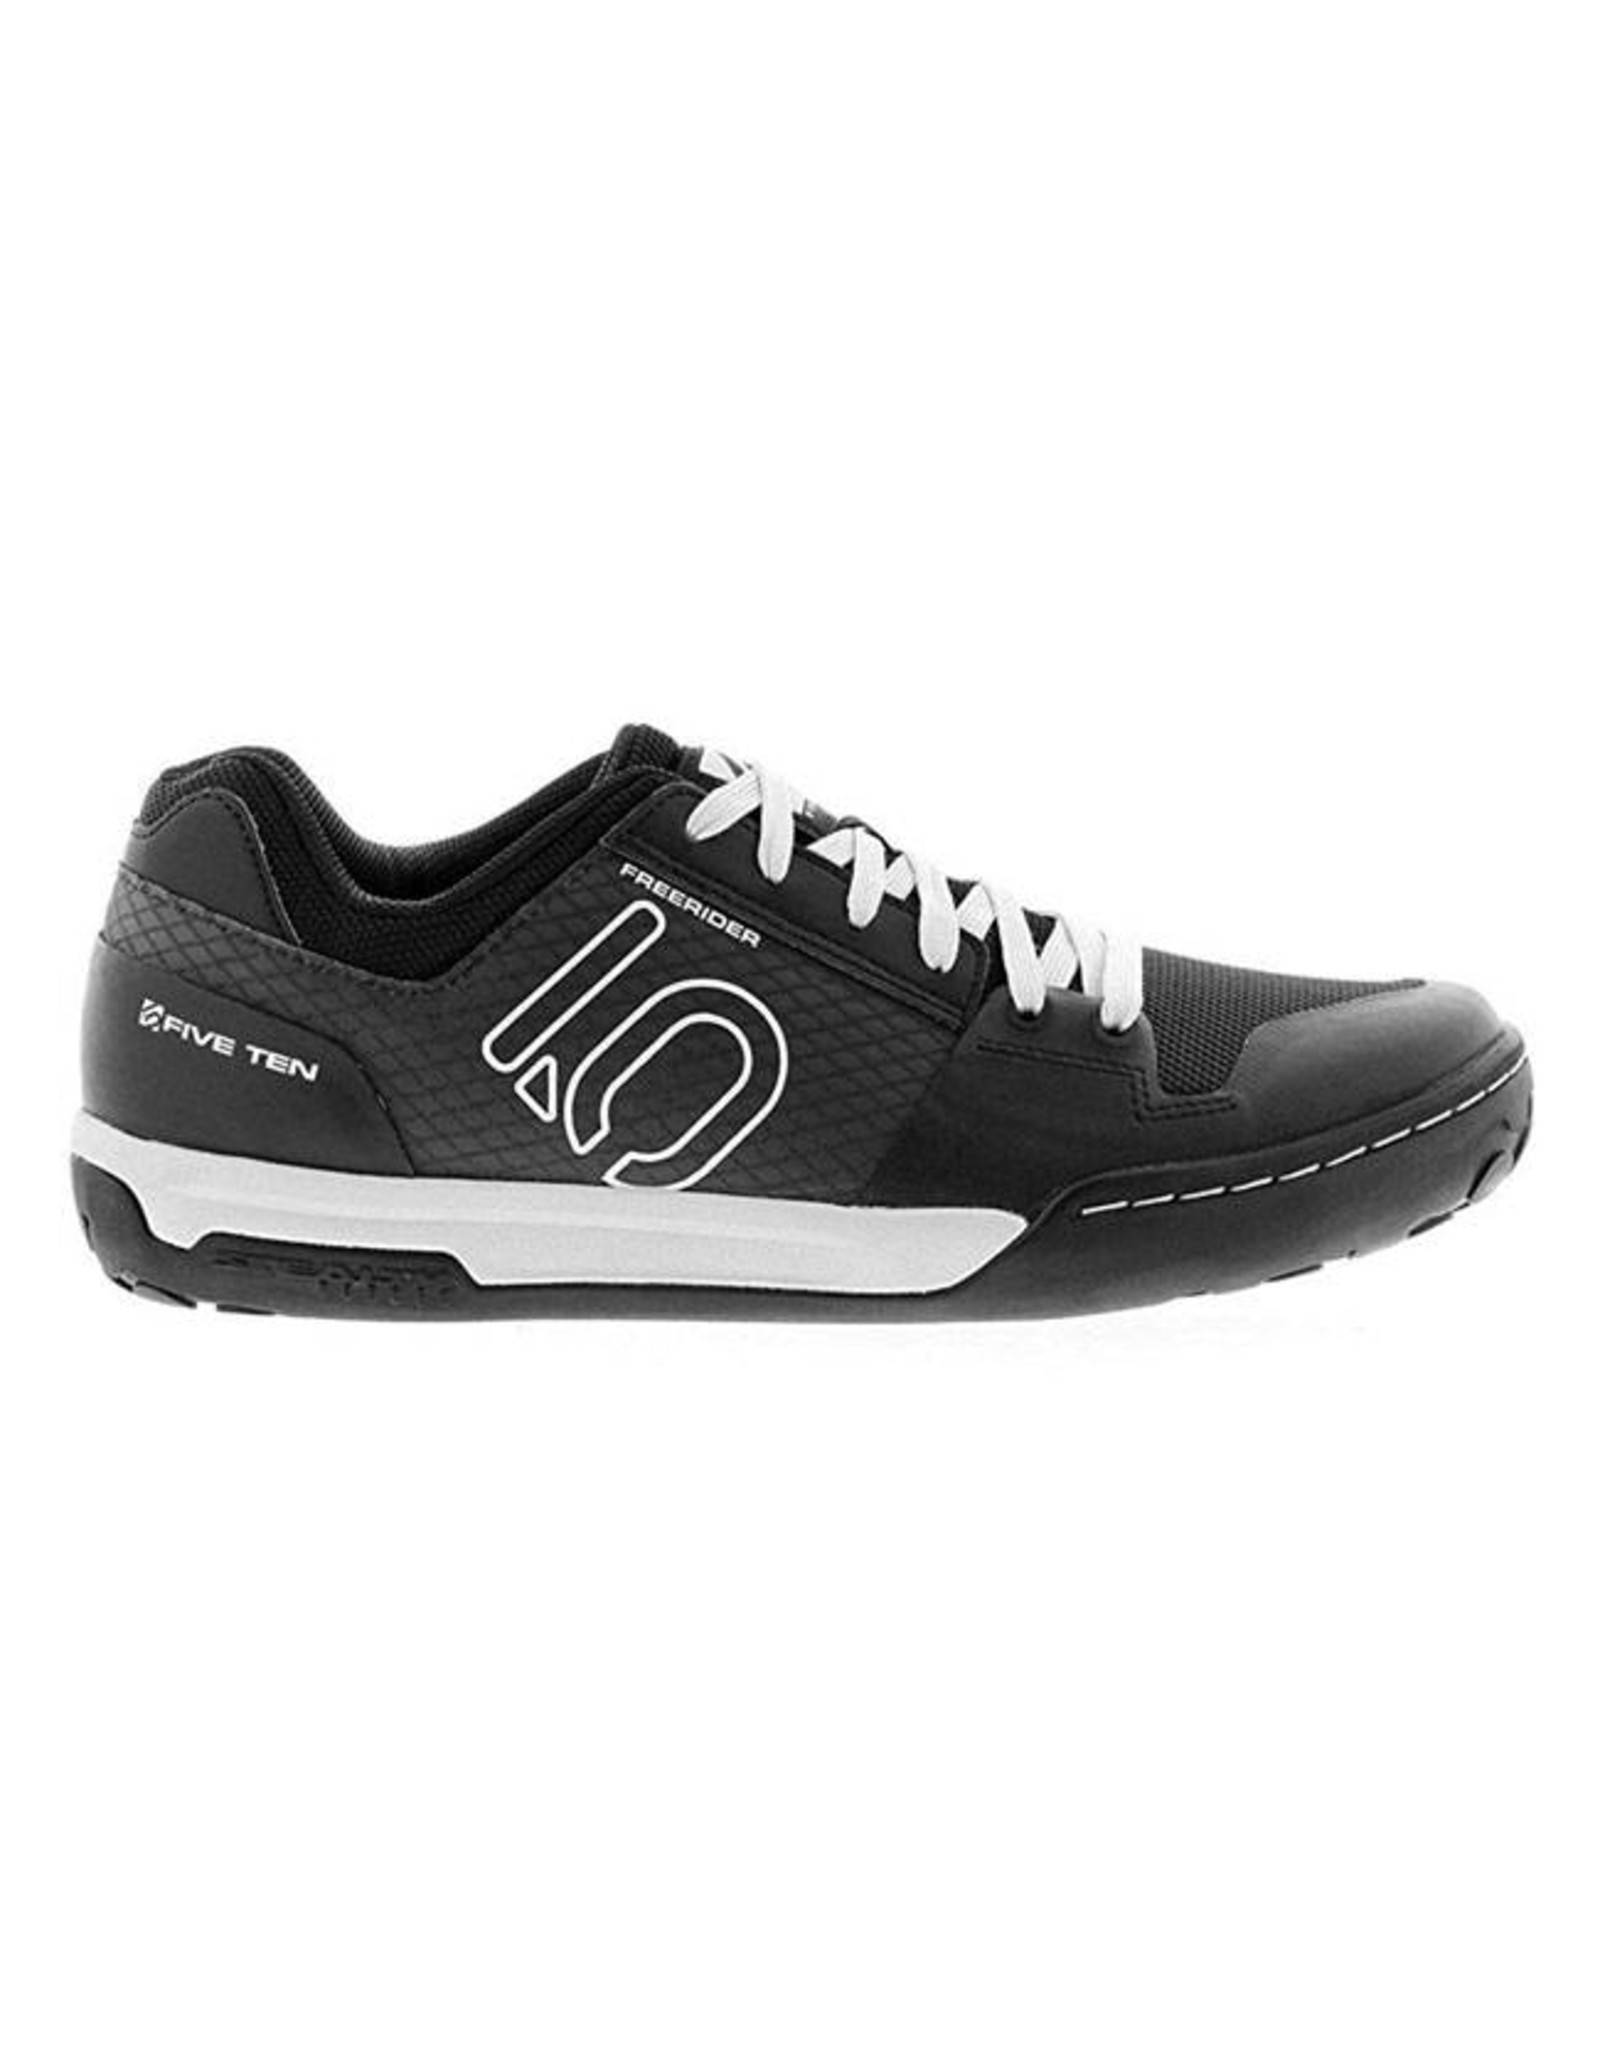 Five Ten Five Ten Freerider Contact Men's Flat Pedal Shoe: Split Black 10.5